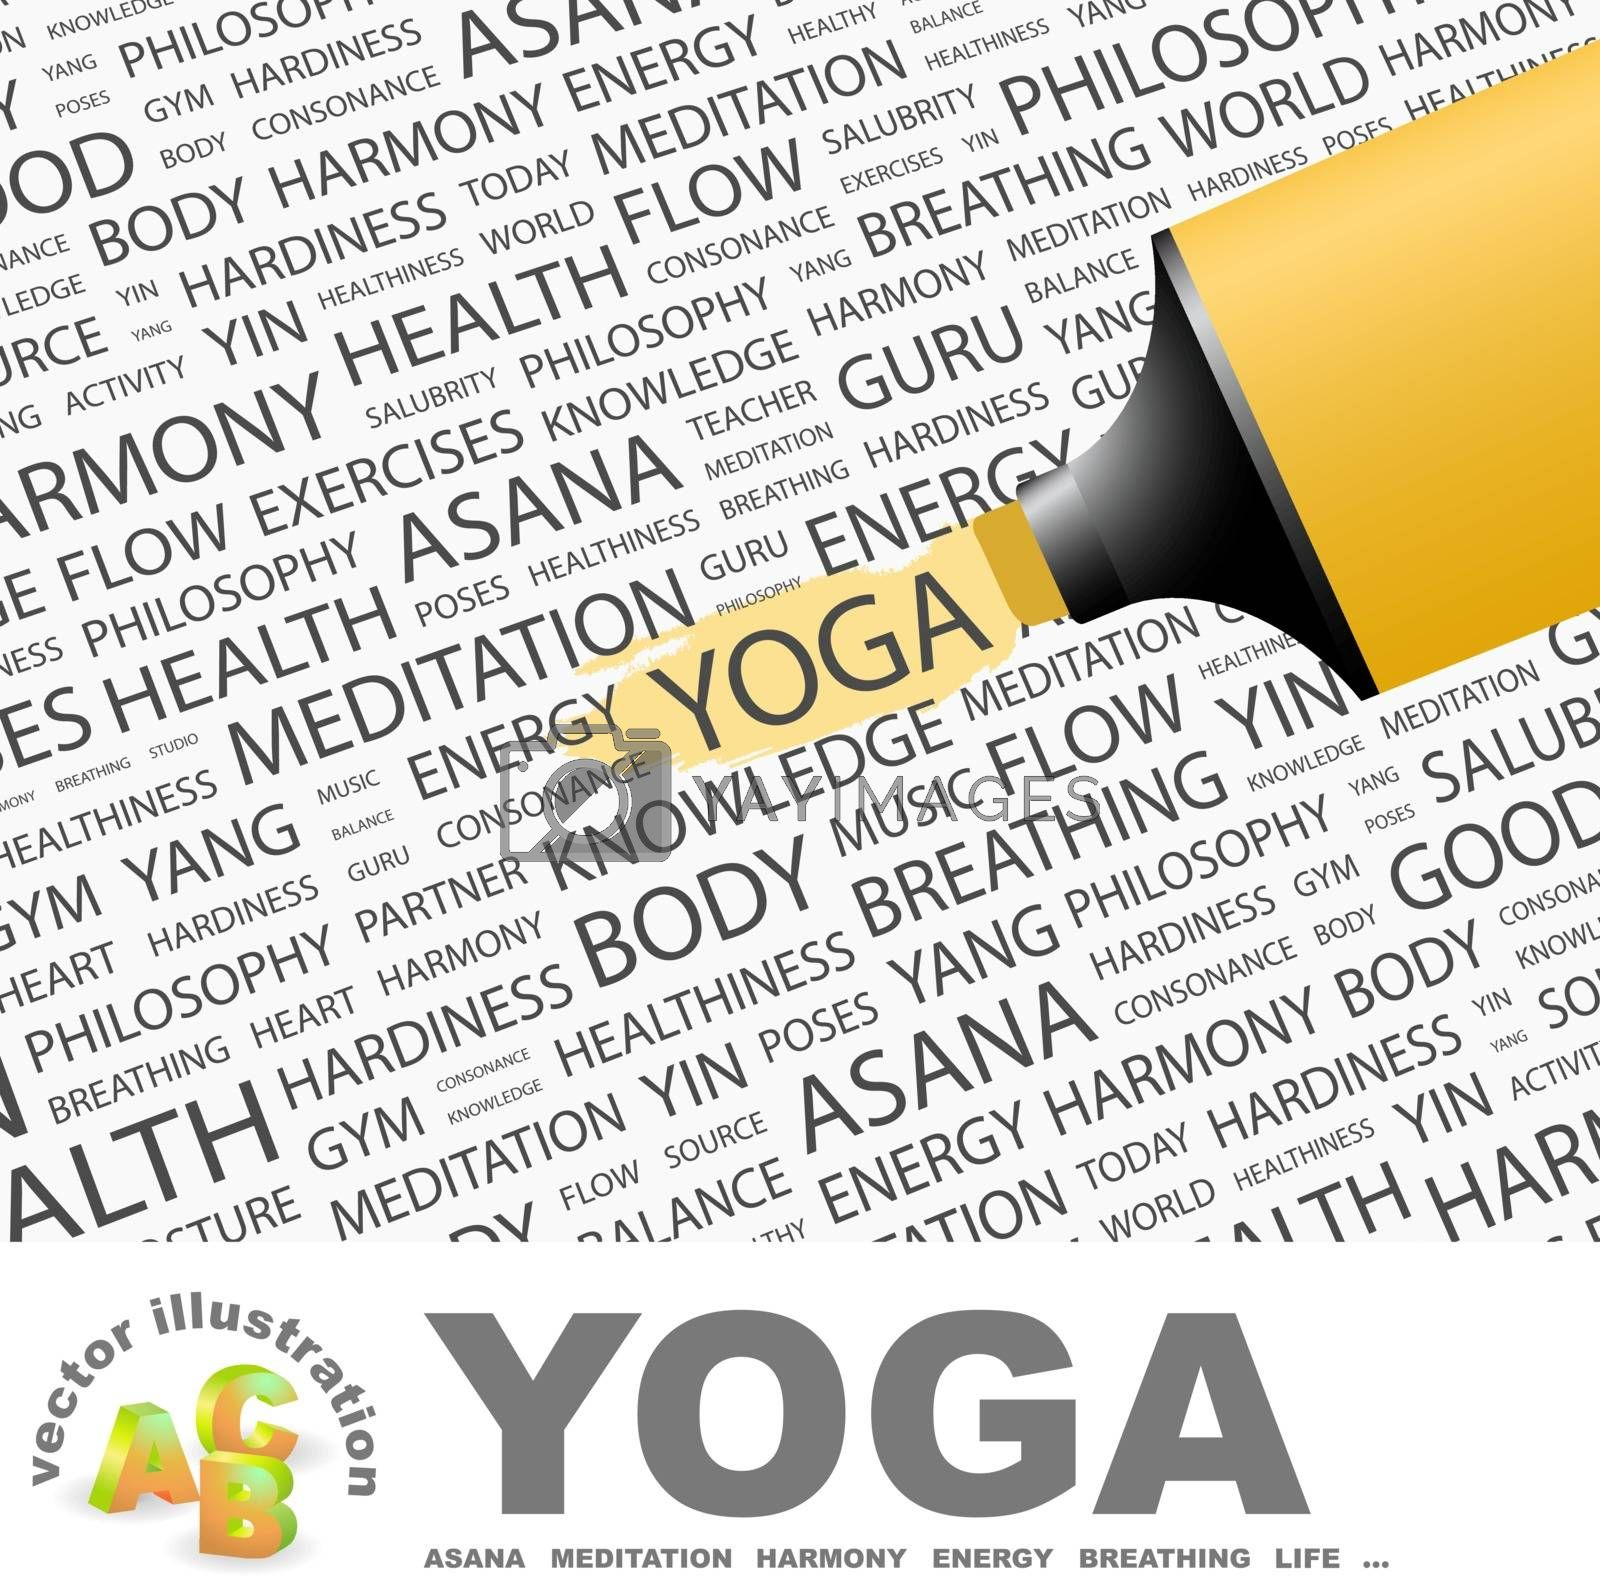 YOGA. Concept illustration. Graphic tag collection. Wordcloud collage.